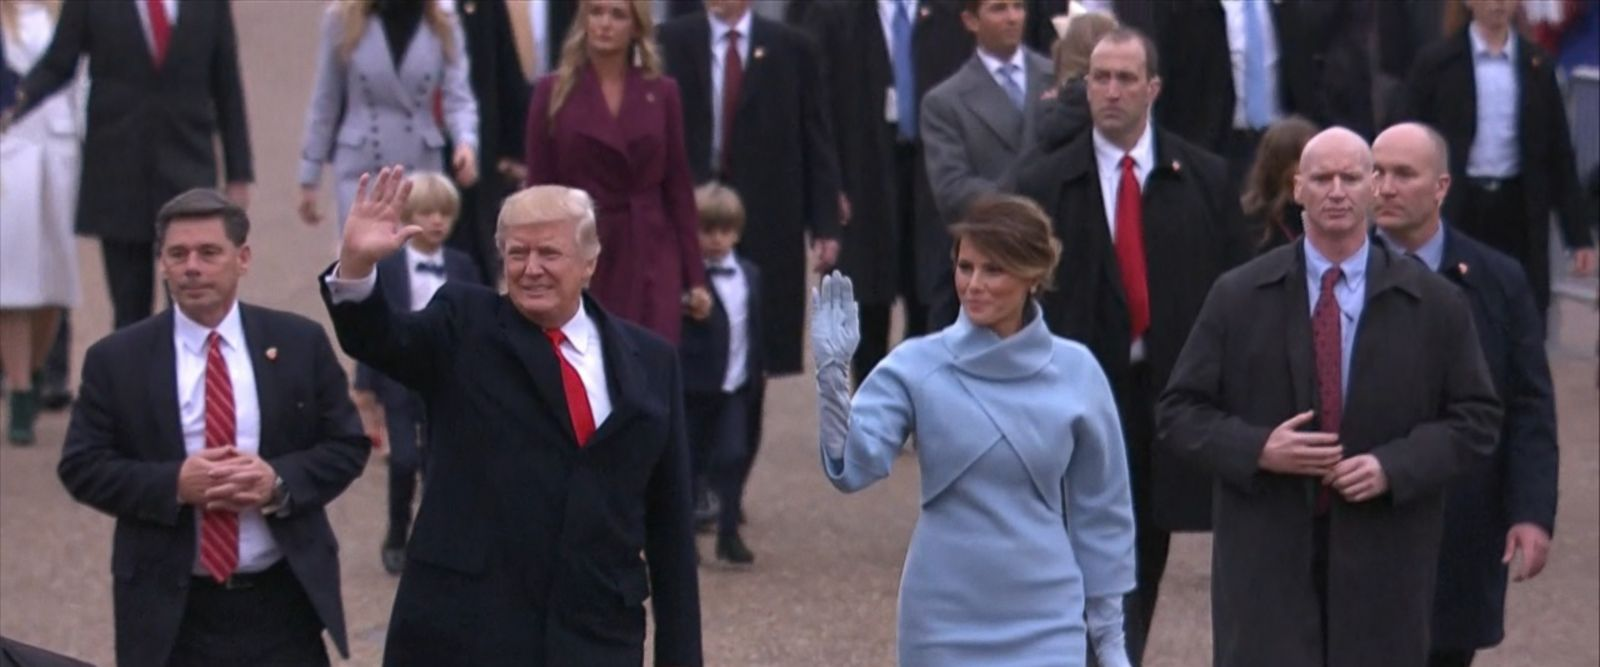 The new president and vice president of the United States paraded through the streets of Washington, D.C., after taking their oaths of office.